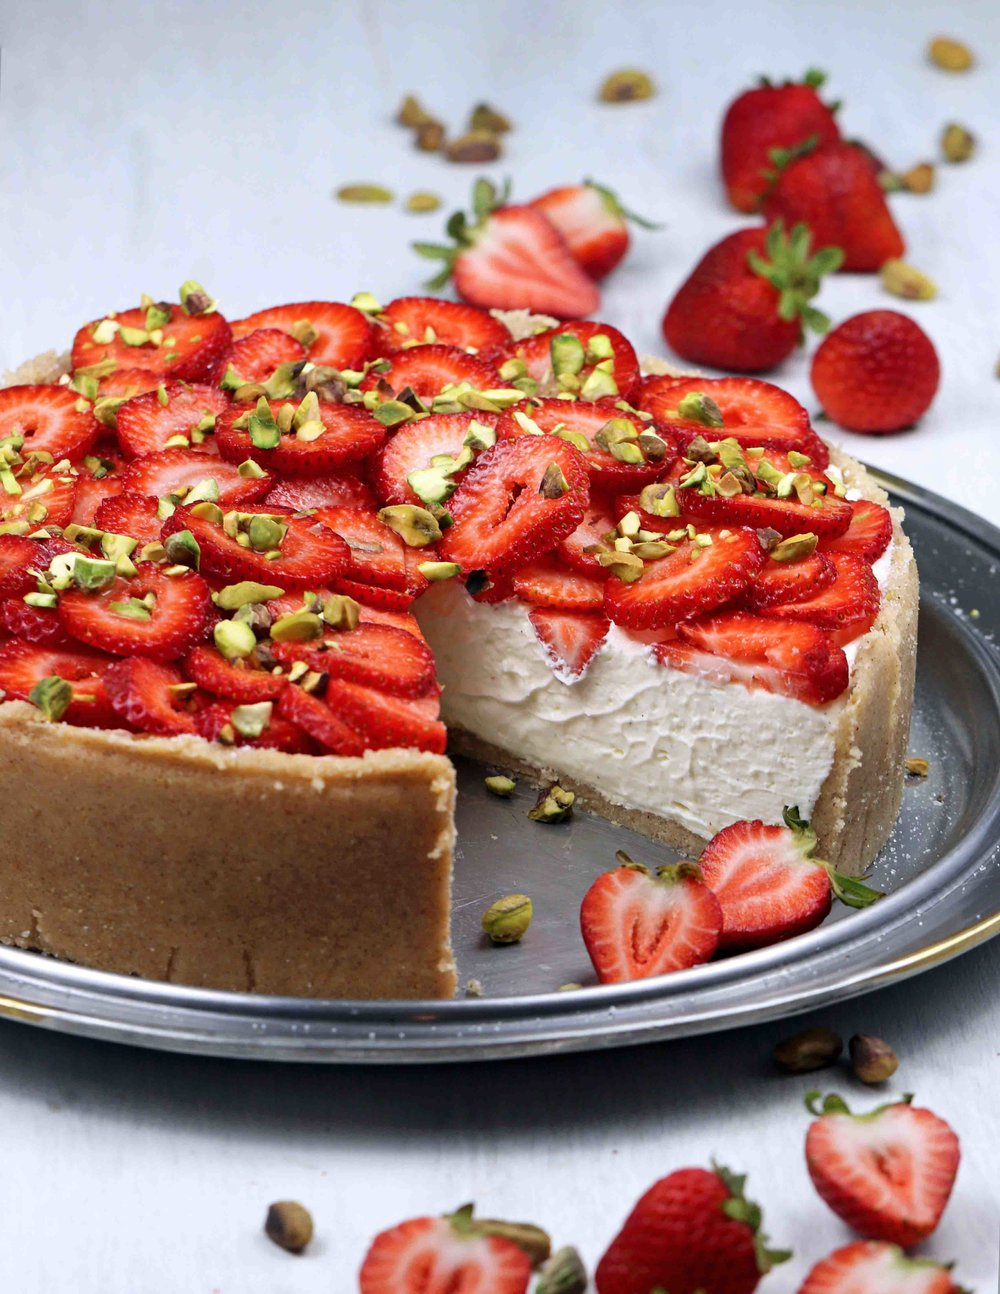 KETO NO-BAKE CHEESECAKE